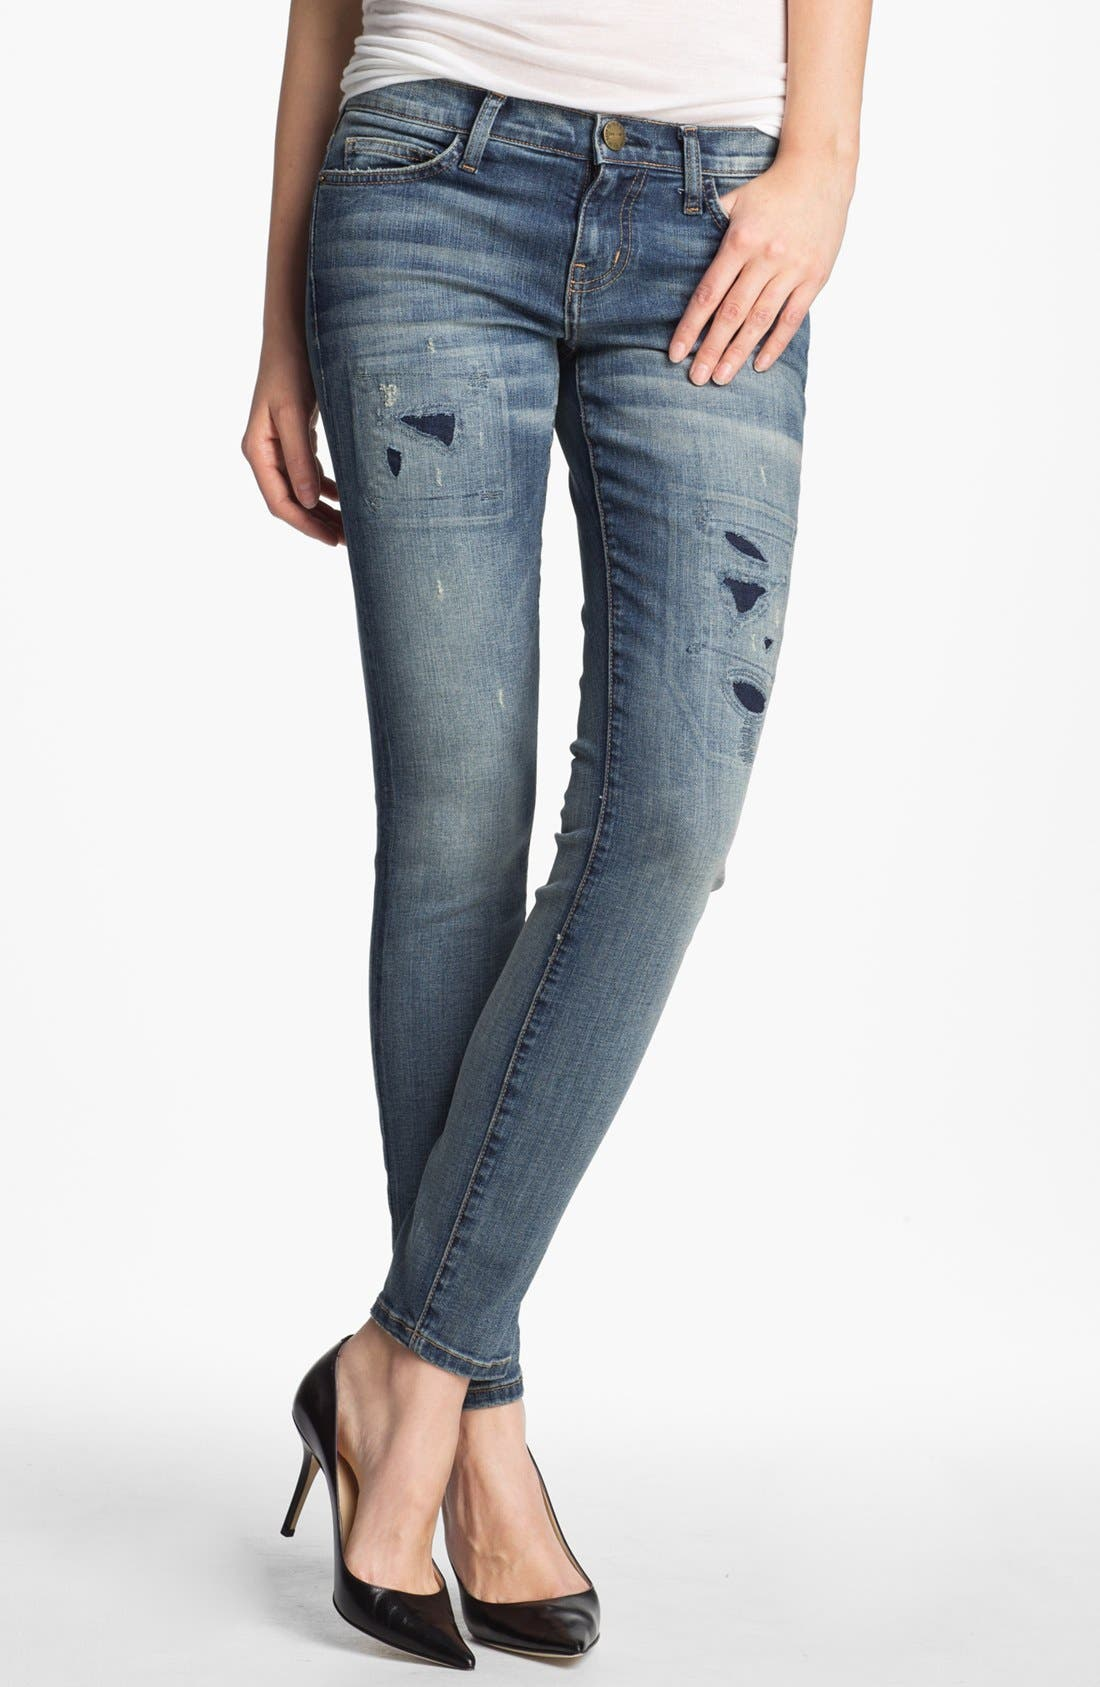 Main Image - Current/Elliott 'The Ankle' Skinny Jeans (Pixie with Repair)